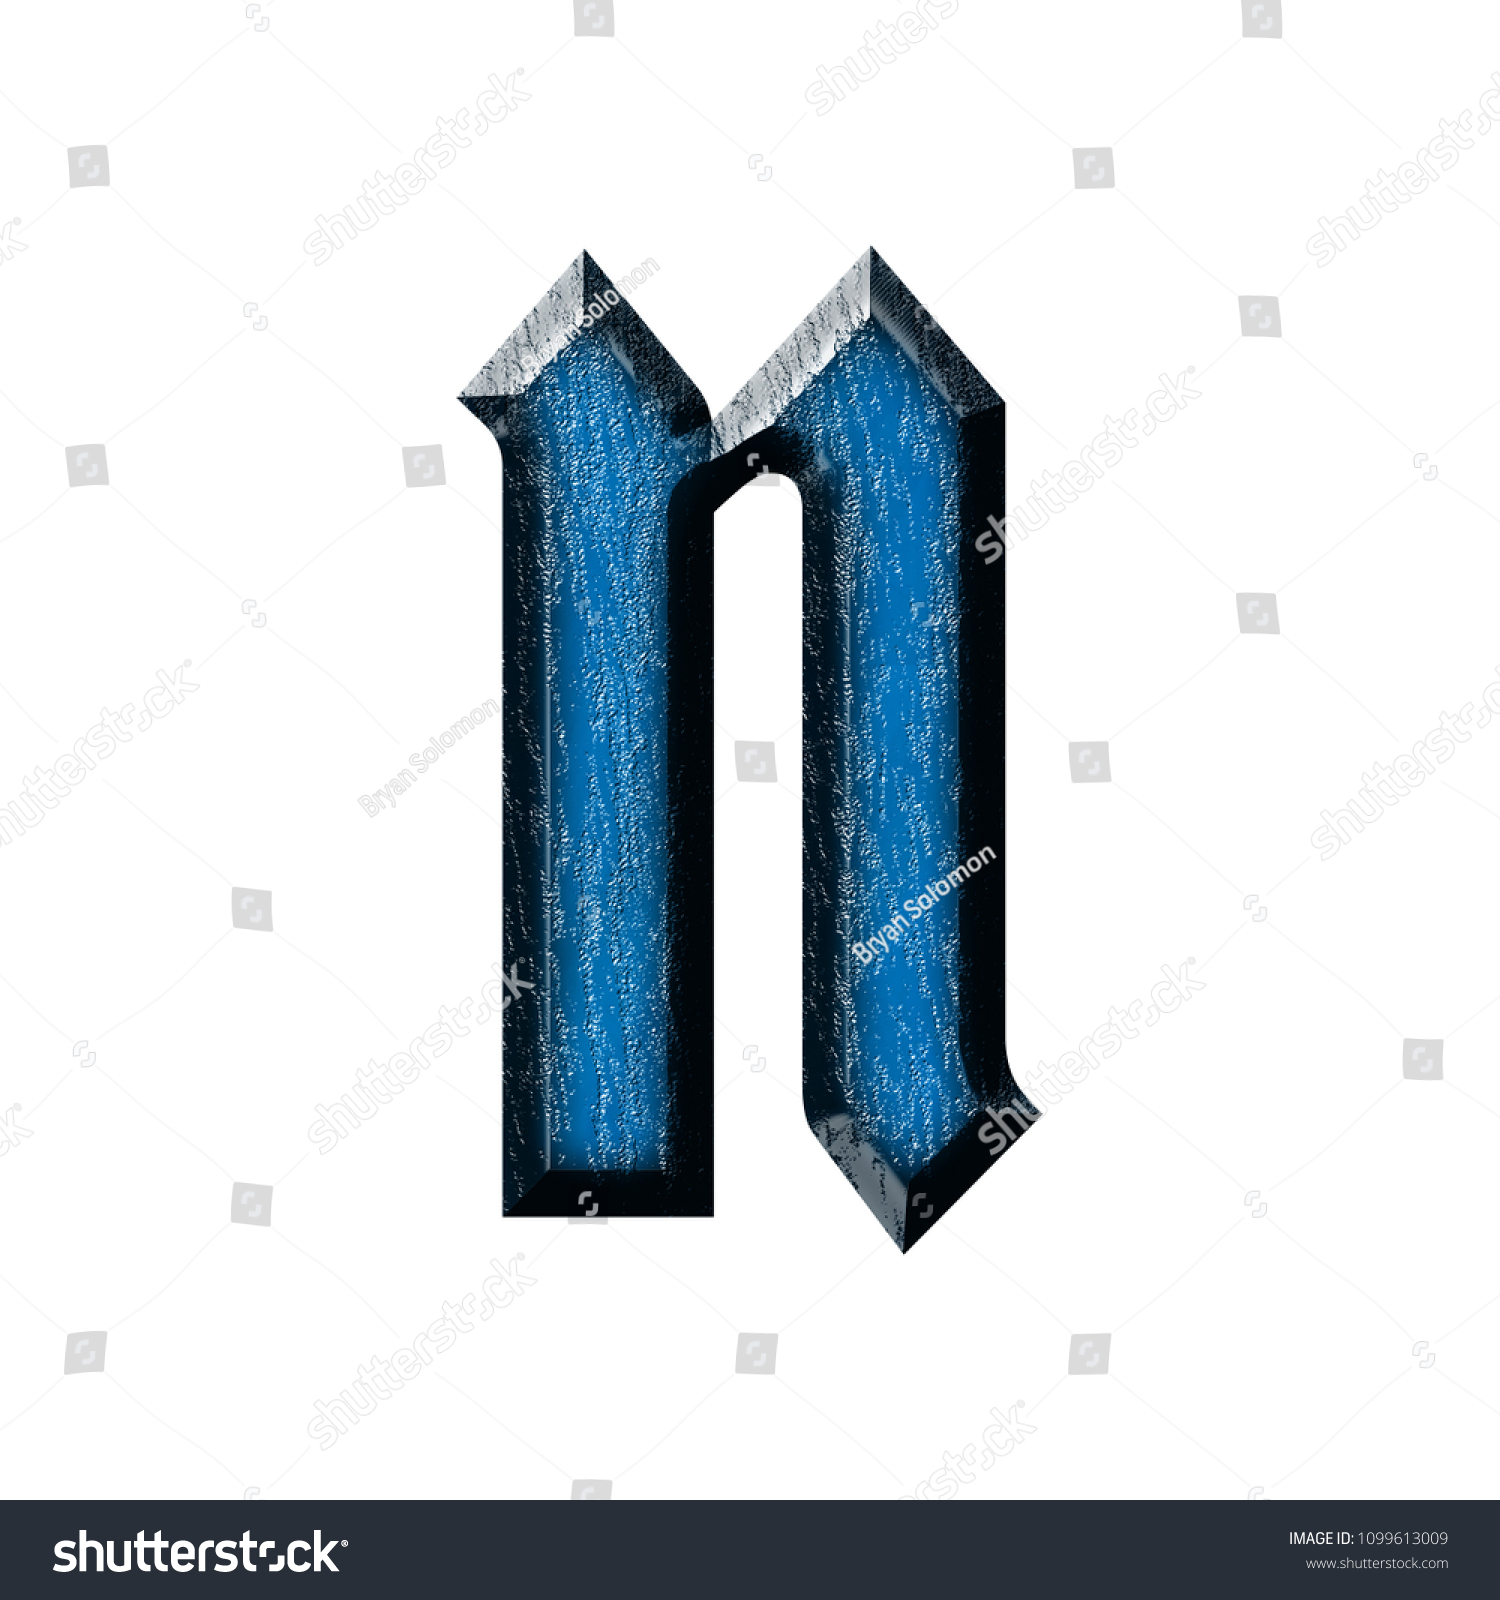 Blue Wood Letter N Lowercase In A 3D Illustration With Glossy Grain